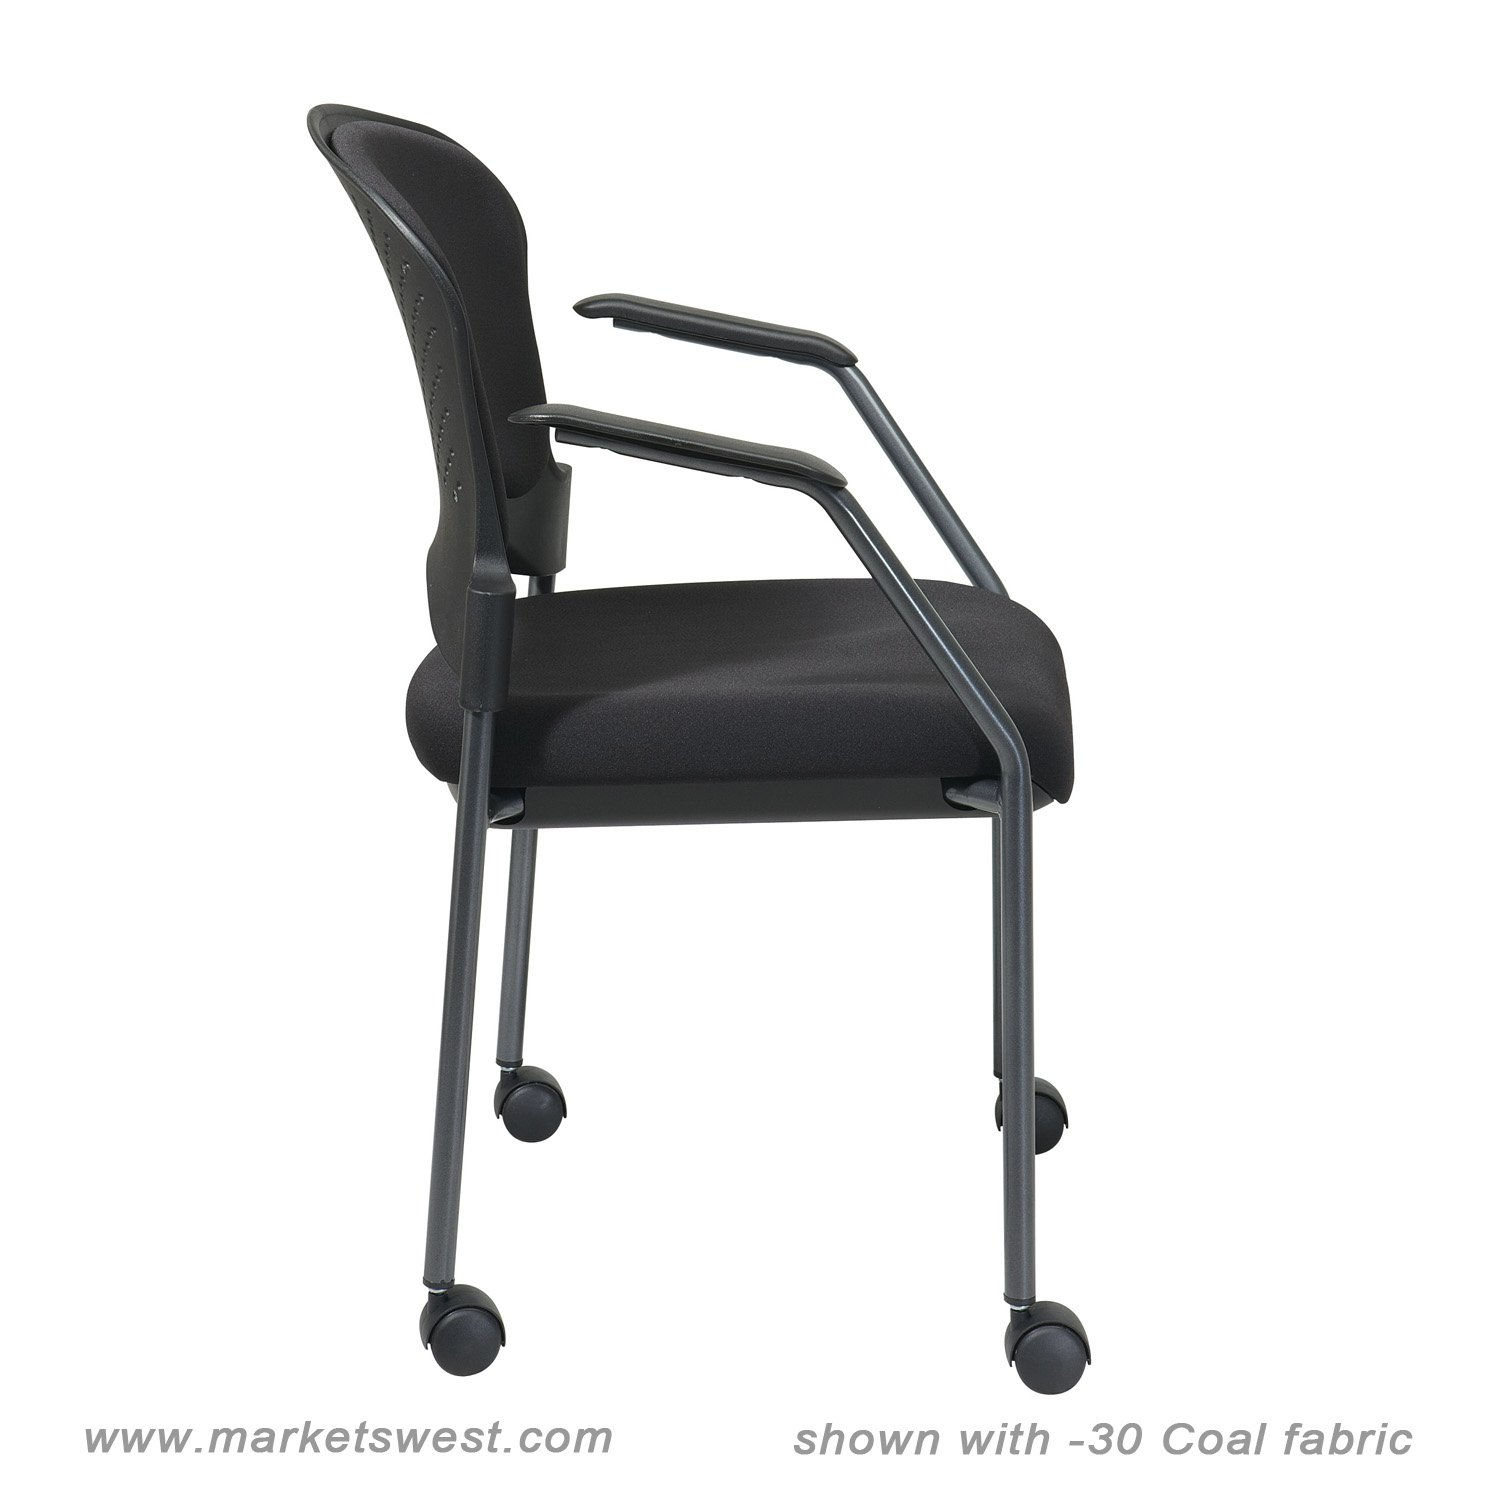 stackable rolling chairs ergonomic chair with adjustable armrests visitors upholstered back